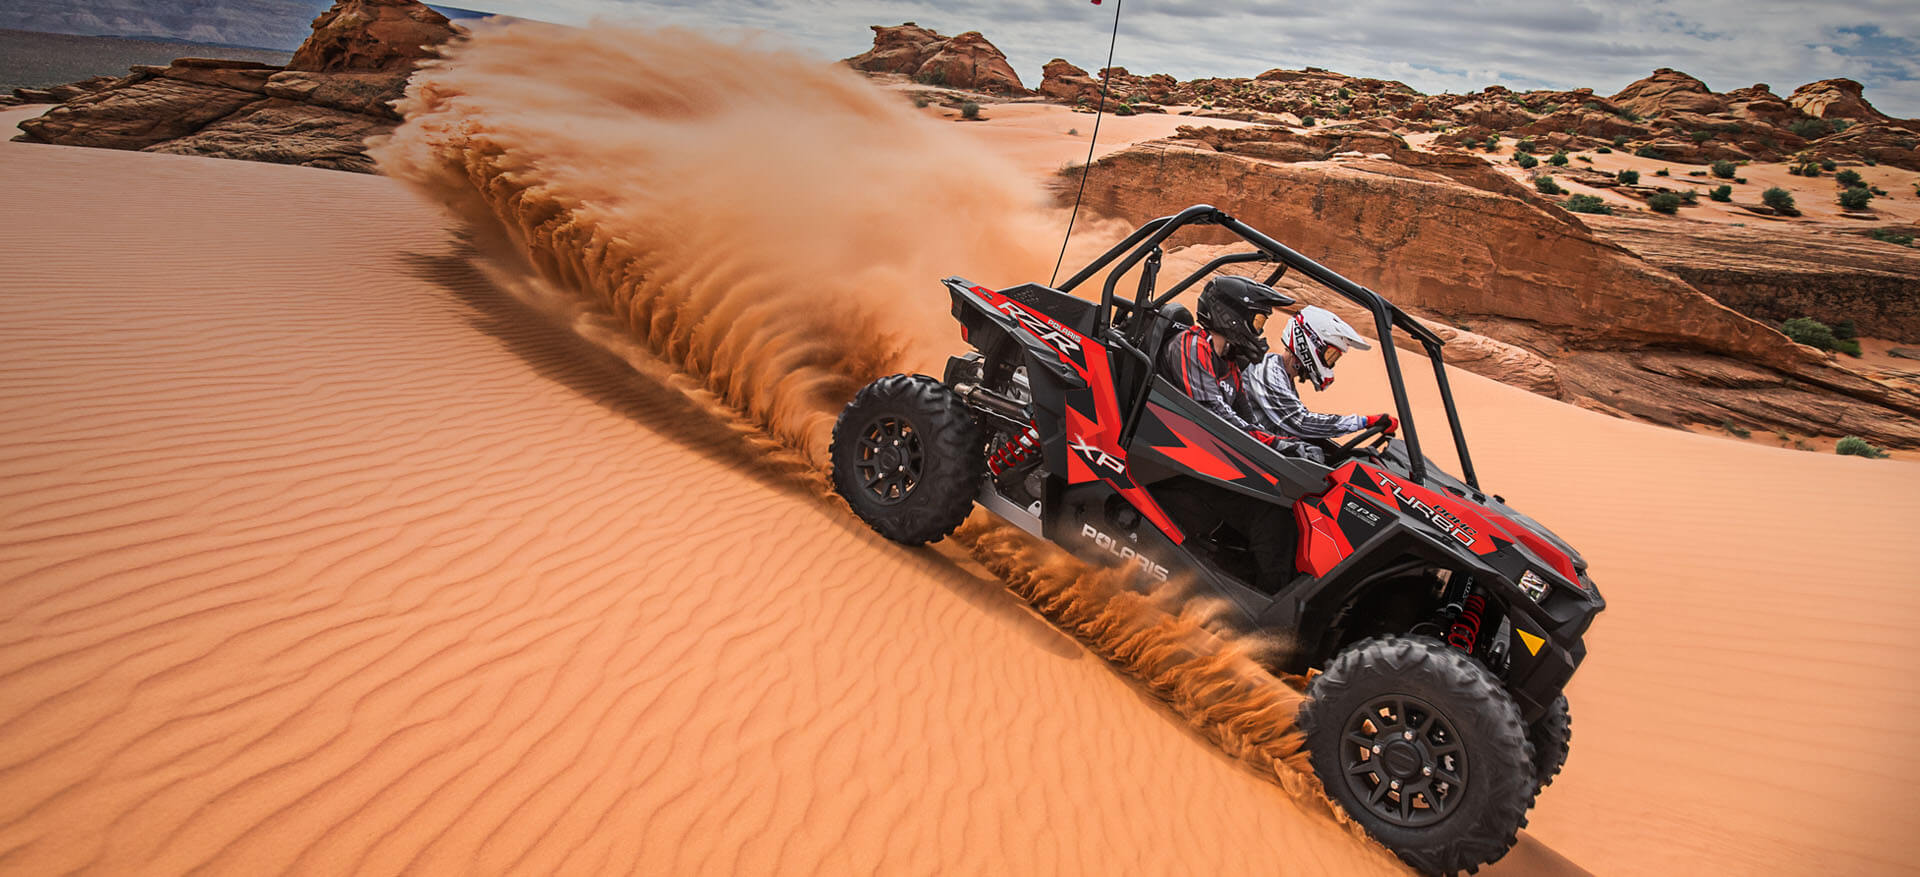 rzr-xp-turbo-fox-edition-location-2-lg